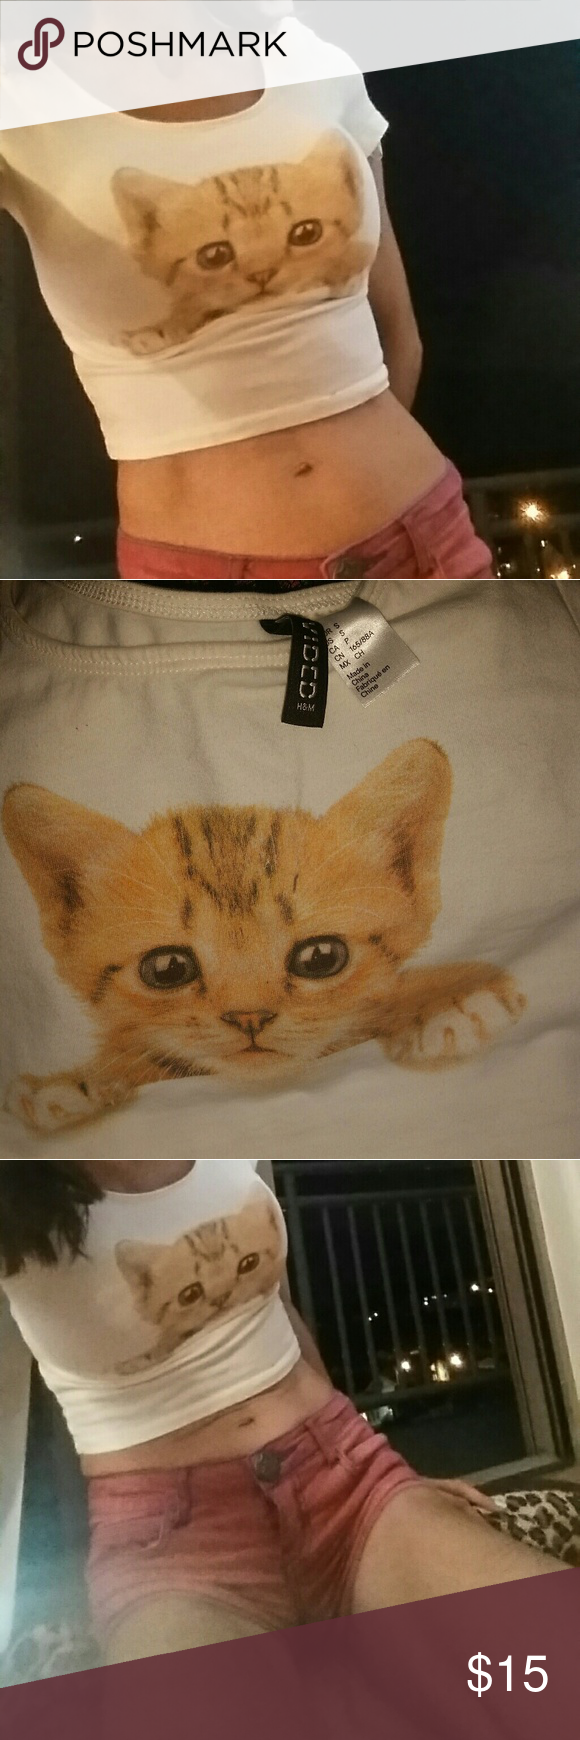 Small Kitten Crop Top Unworn It S So Cute Because Right Wear The Shirt Creases Naturally On Somebody It Looks Like The Cats Small Kittens Small Crop Tops Cute